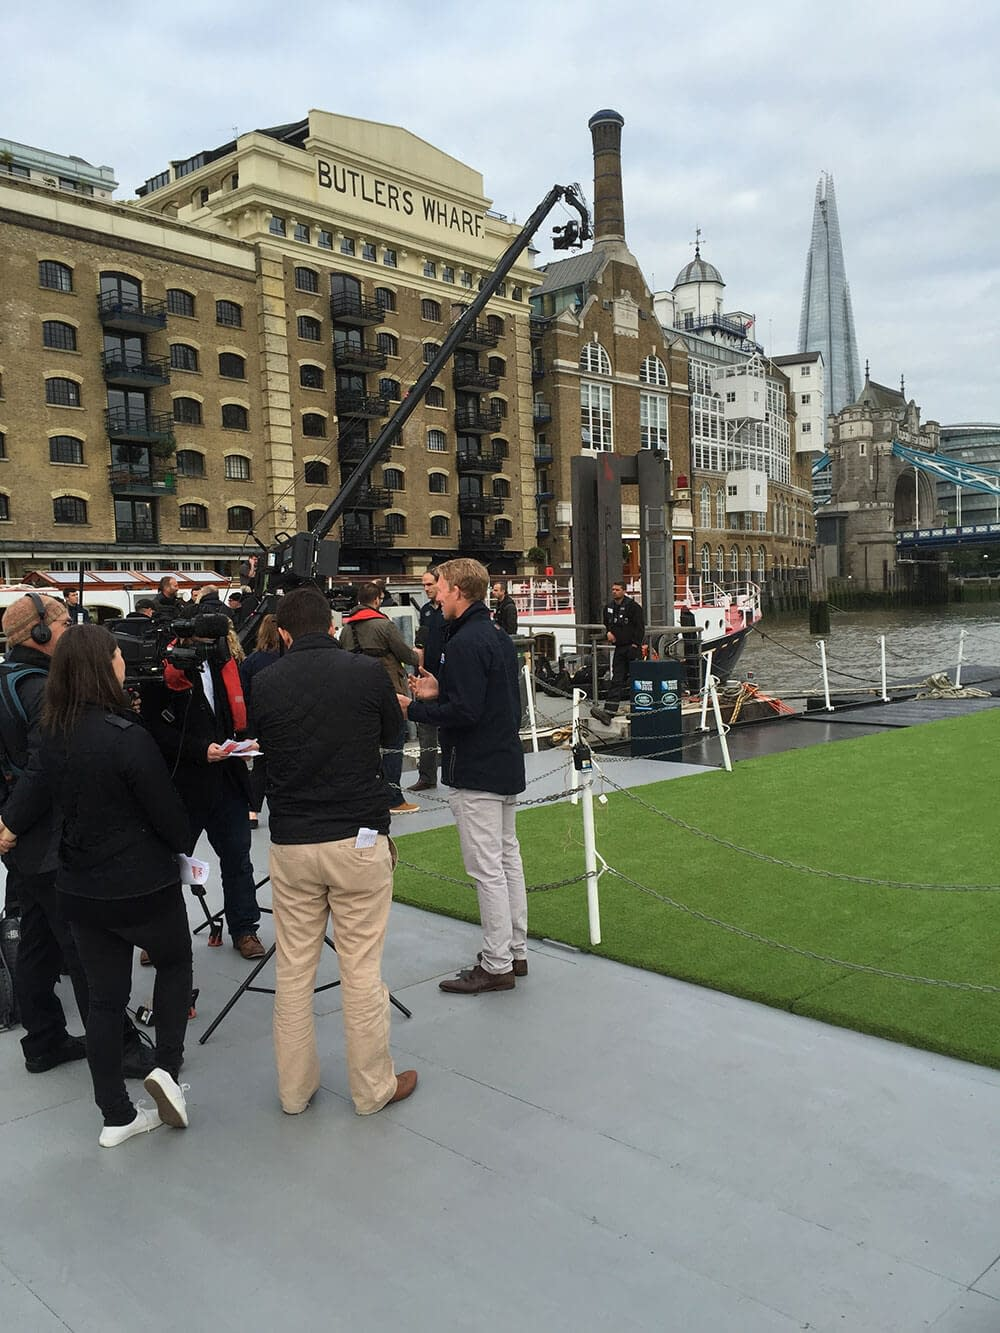 land rover rugby world cup butler's wharf pier